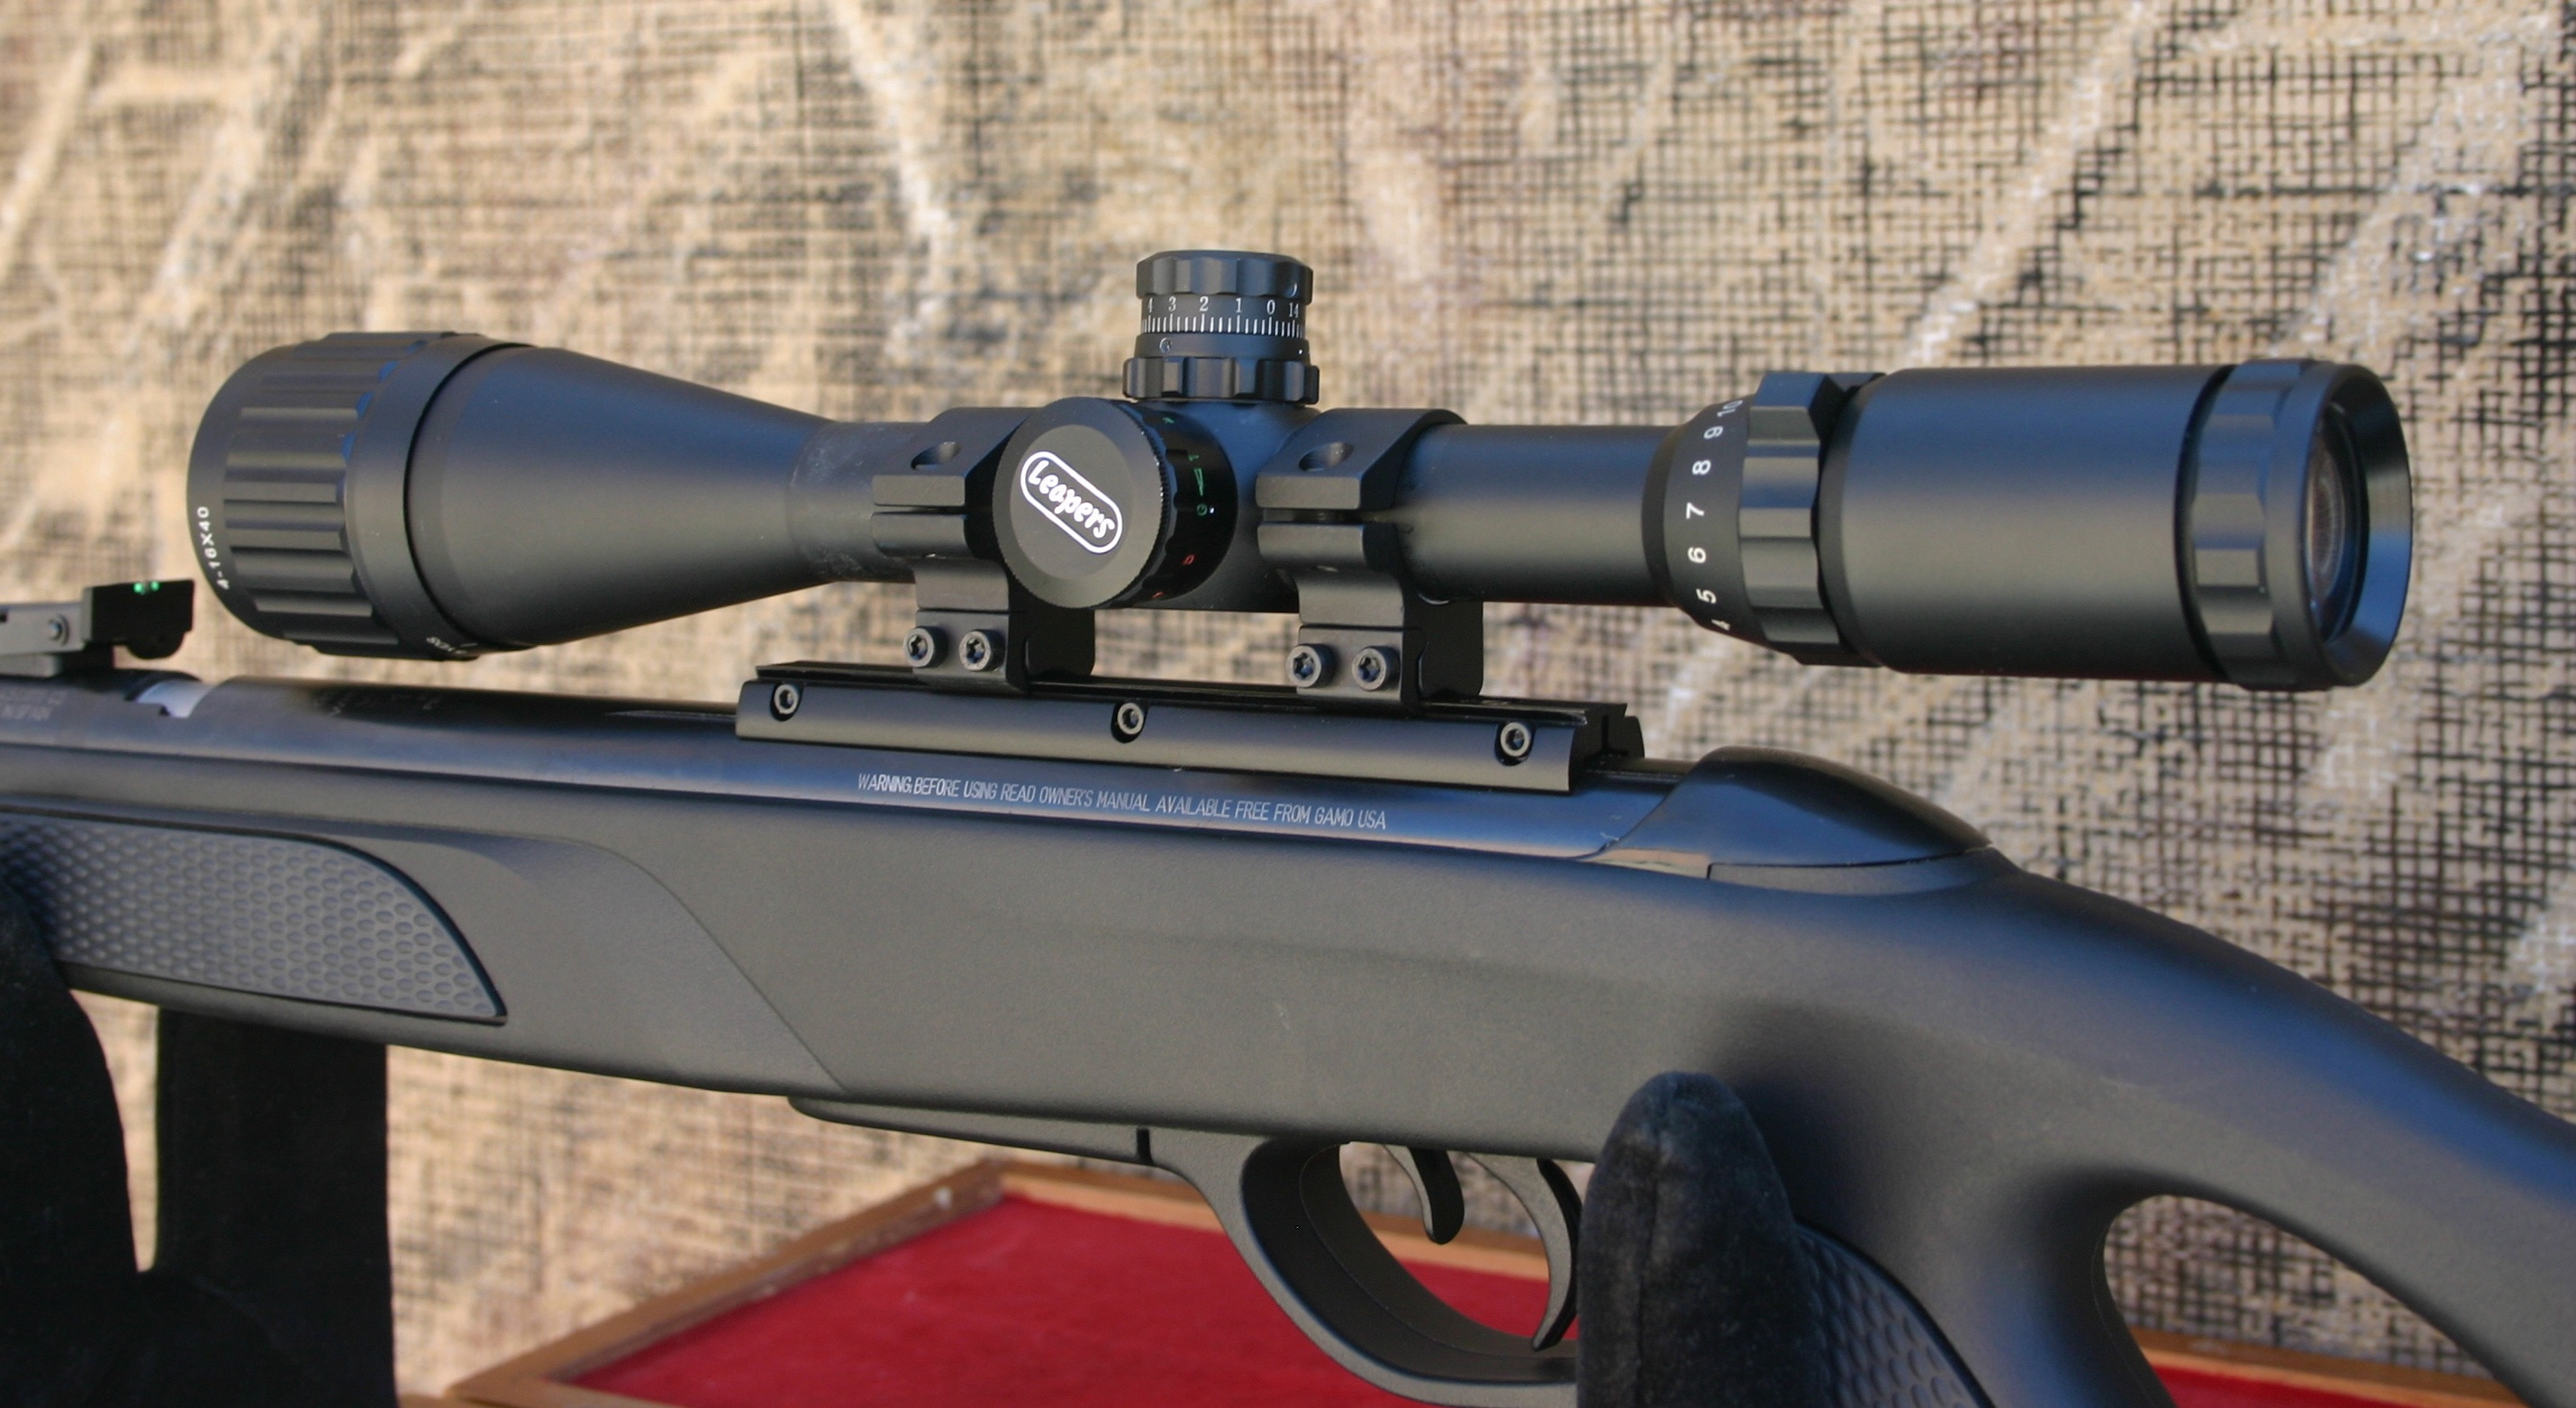 Mini Airgun Review - Gamo CFR Whisper with Red Fire Pellets